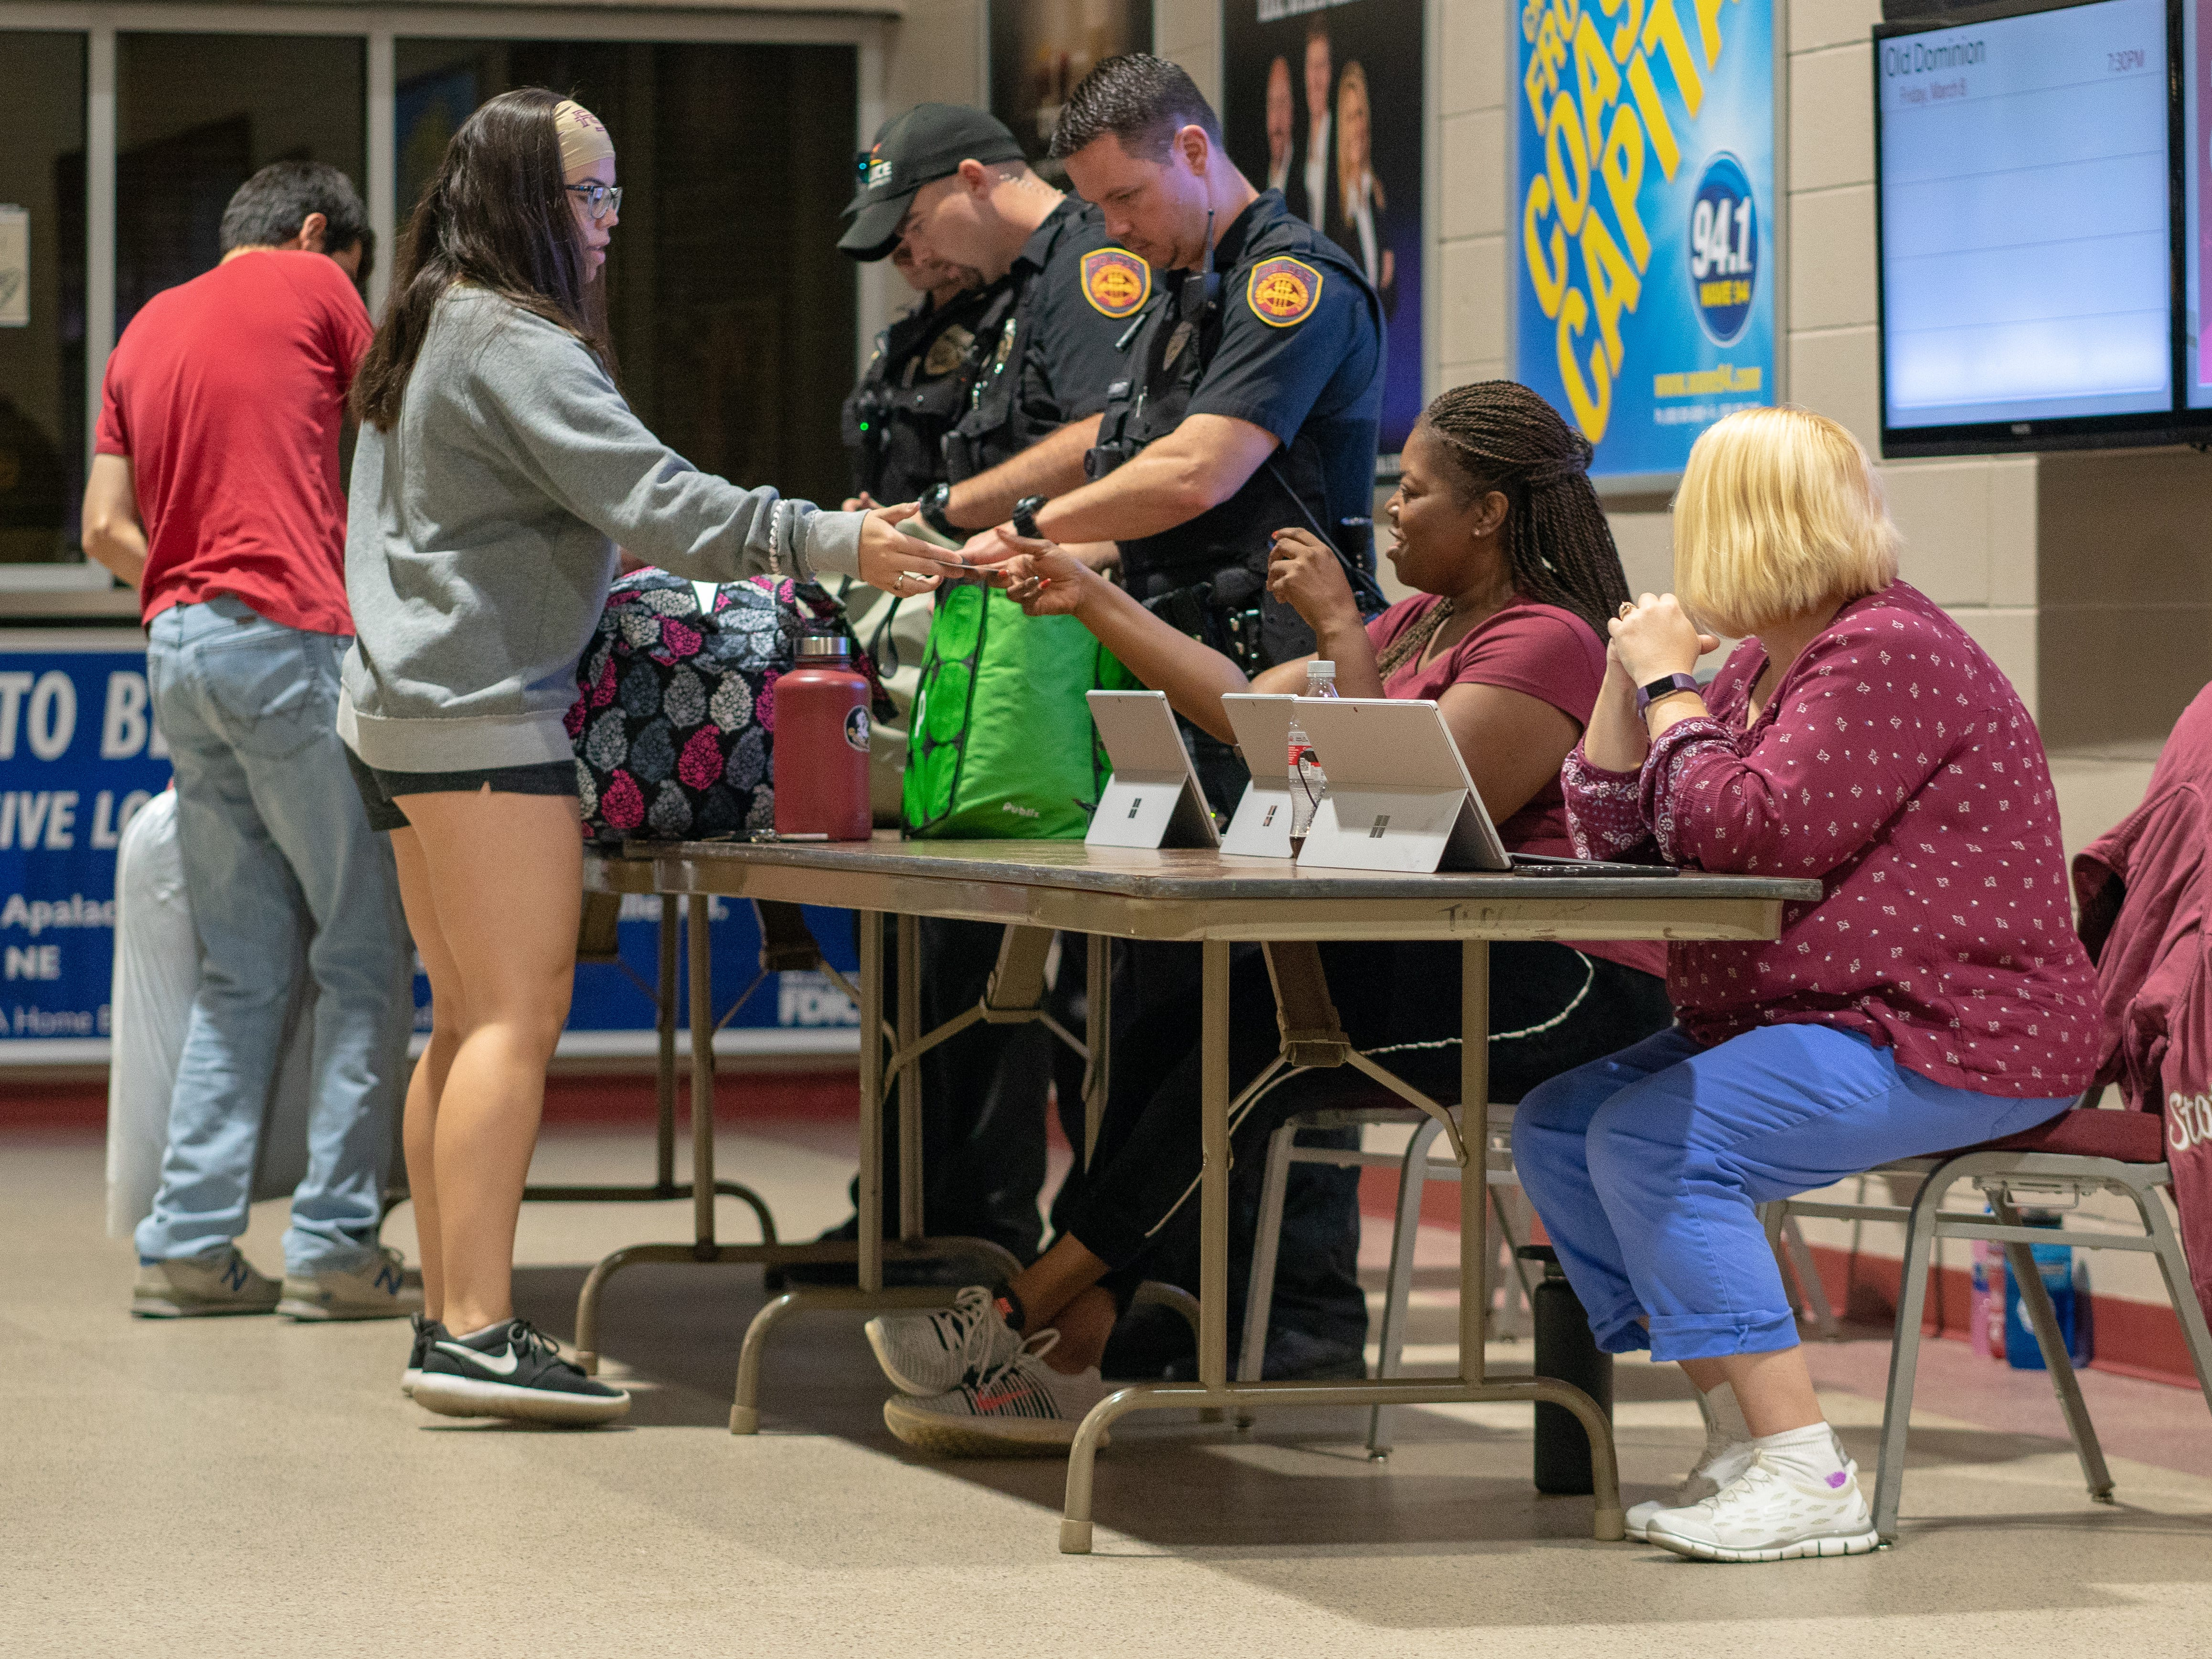 The Donald L. Tucker Civic Center opened its doors as a shelter to FSU students and faculty during Hurricane Michael.